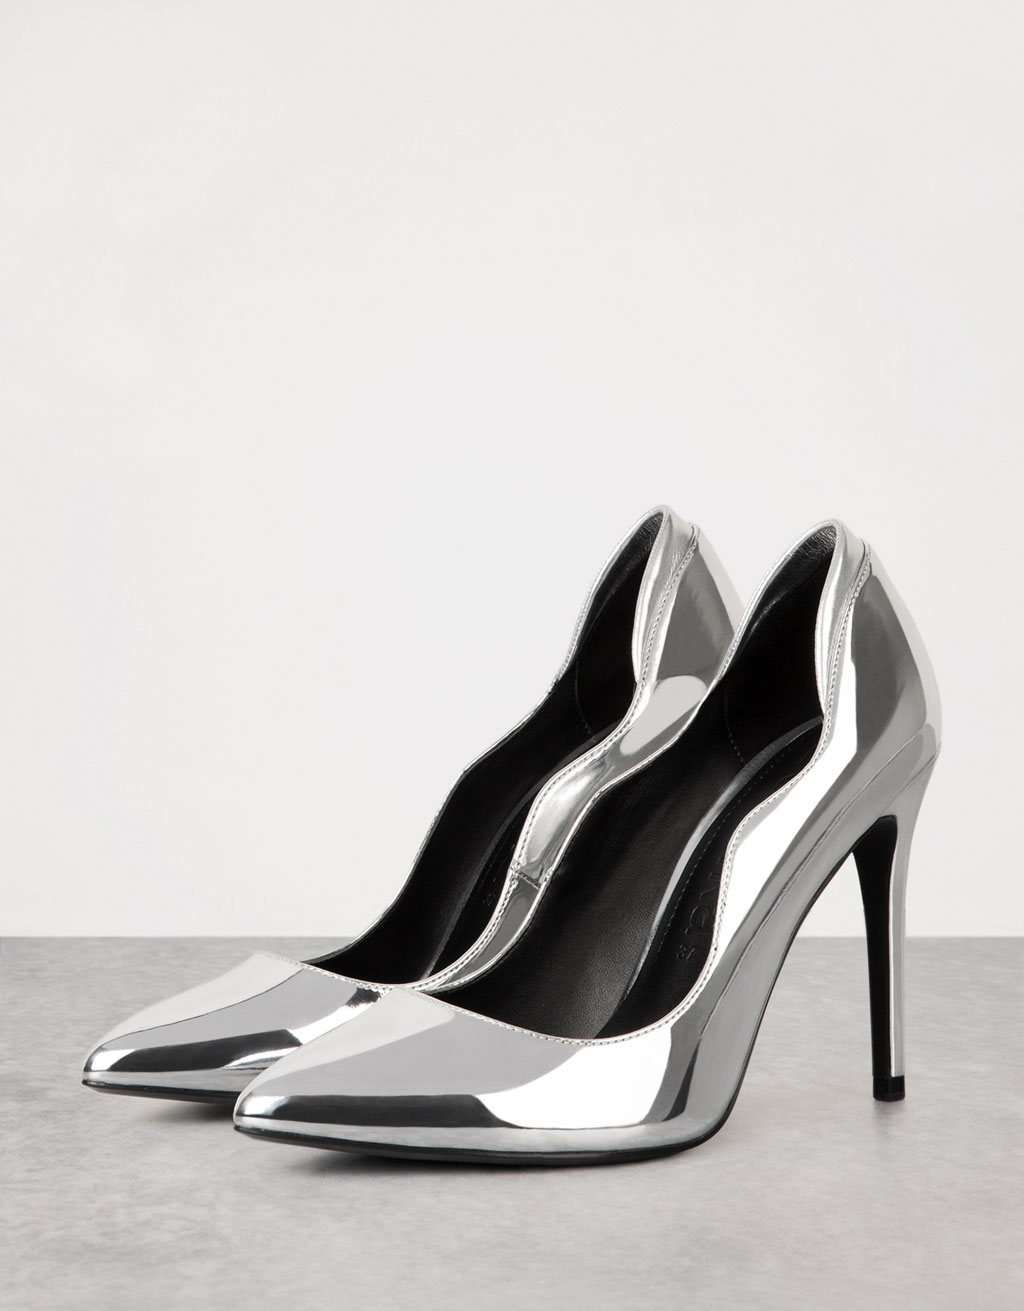 Metallic stiletto scalloped shoes